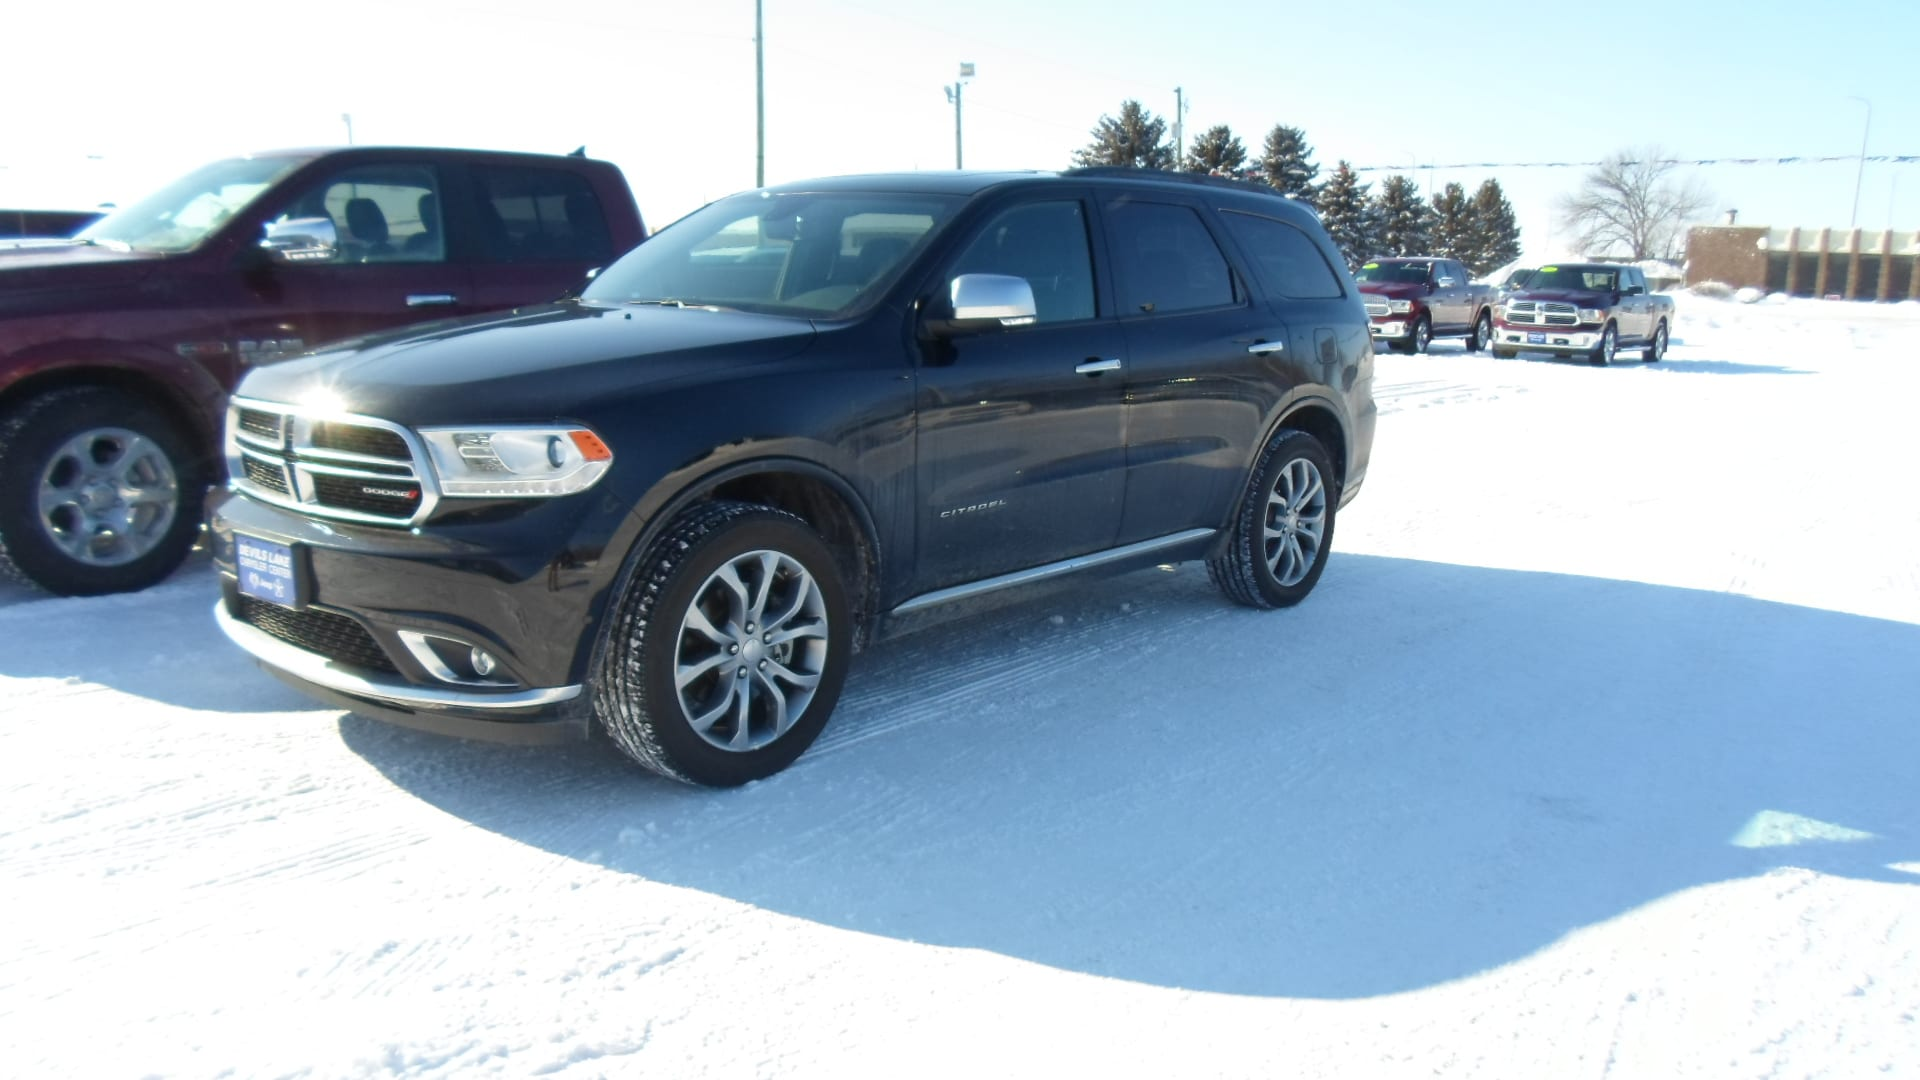 USed 2018 Dodge Durango for sale in Devils Lake